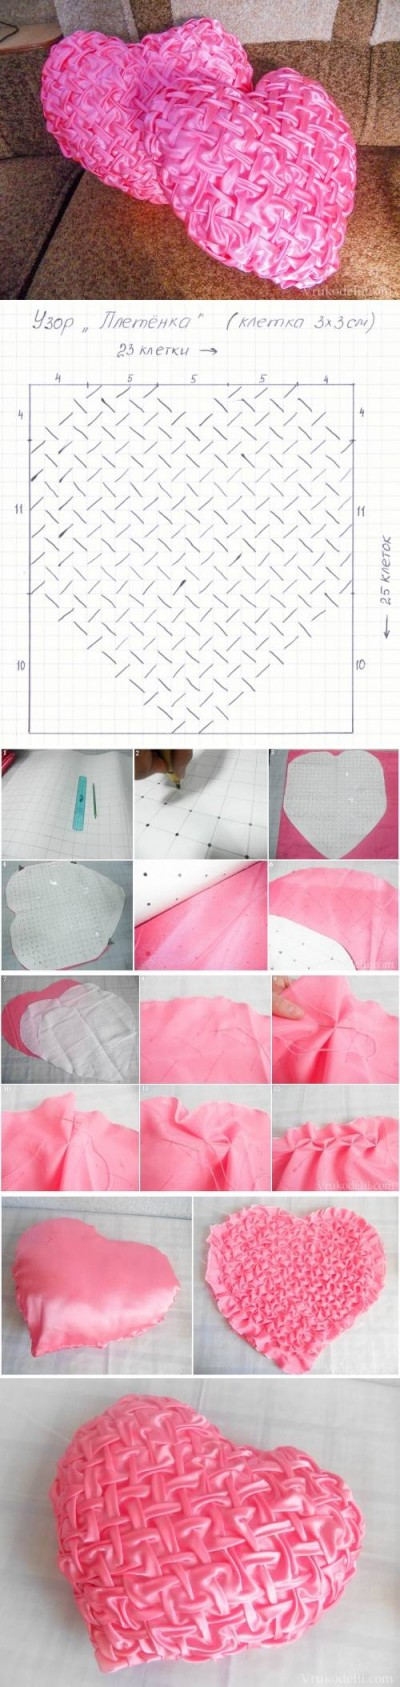 How to make Stylish Heart Pillow step by step DIY tutorial instructions